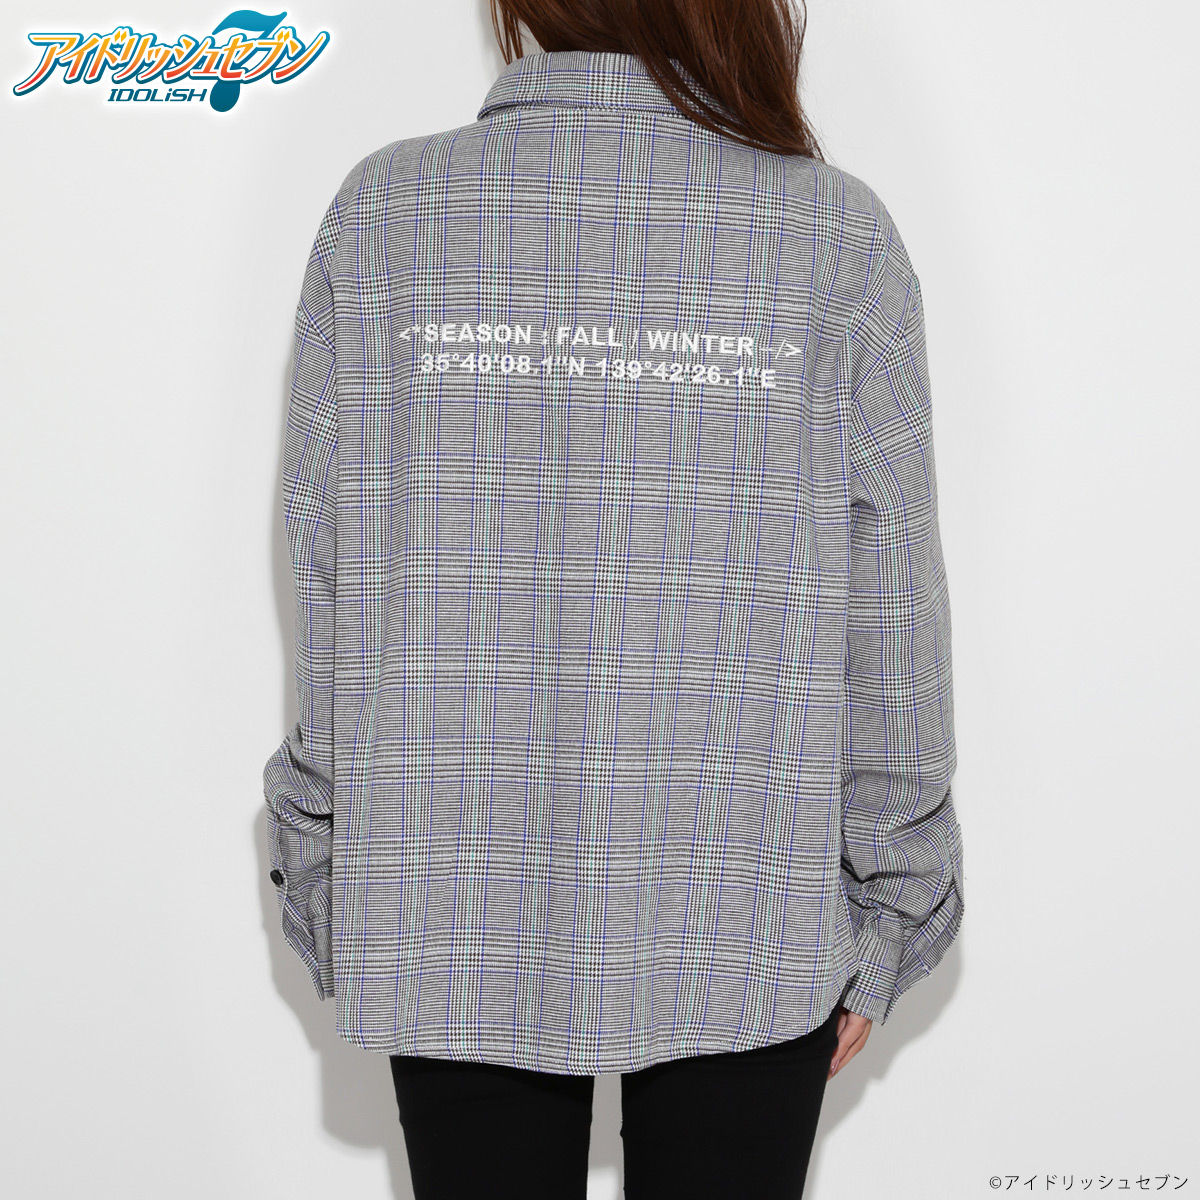 YAMATO NIKAIDO Over sized Check shirts